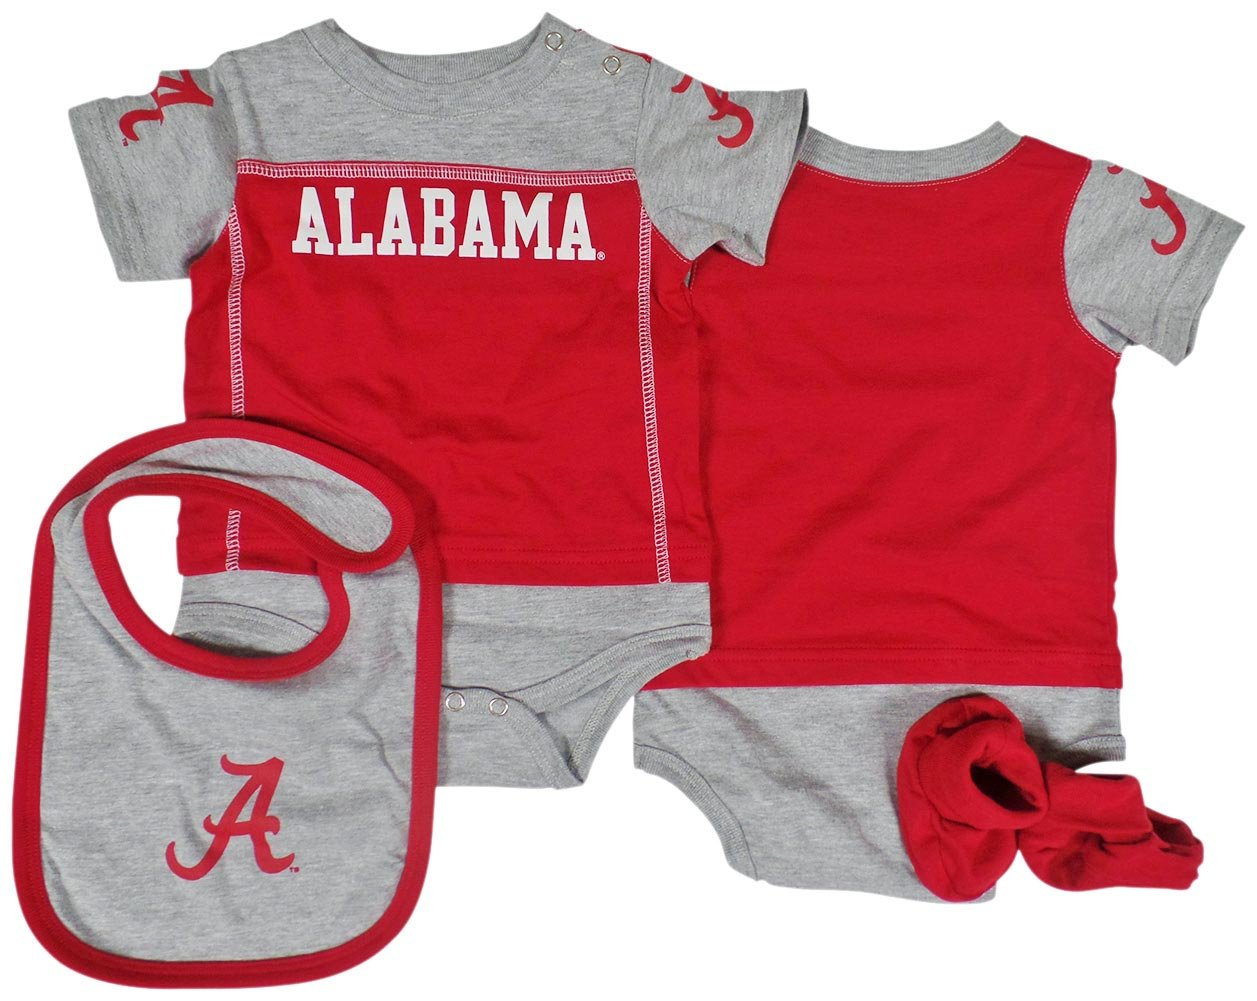 4f8a2e0d2 Alabama Football Jersey For Toddlers